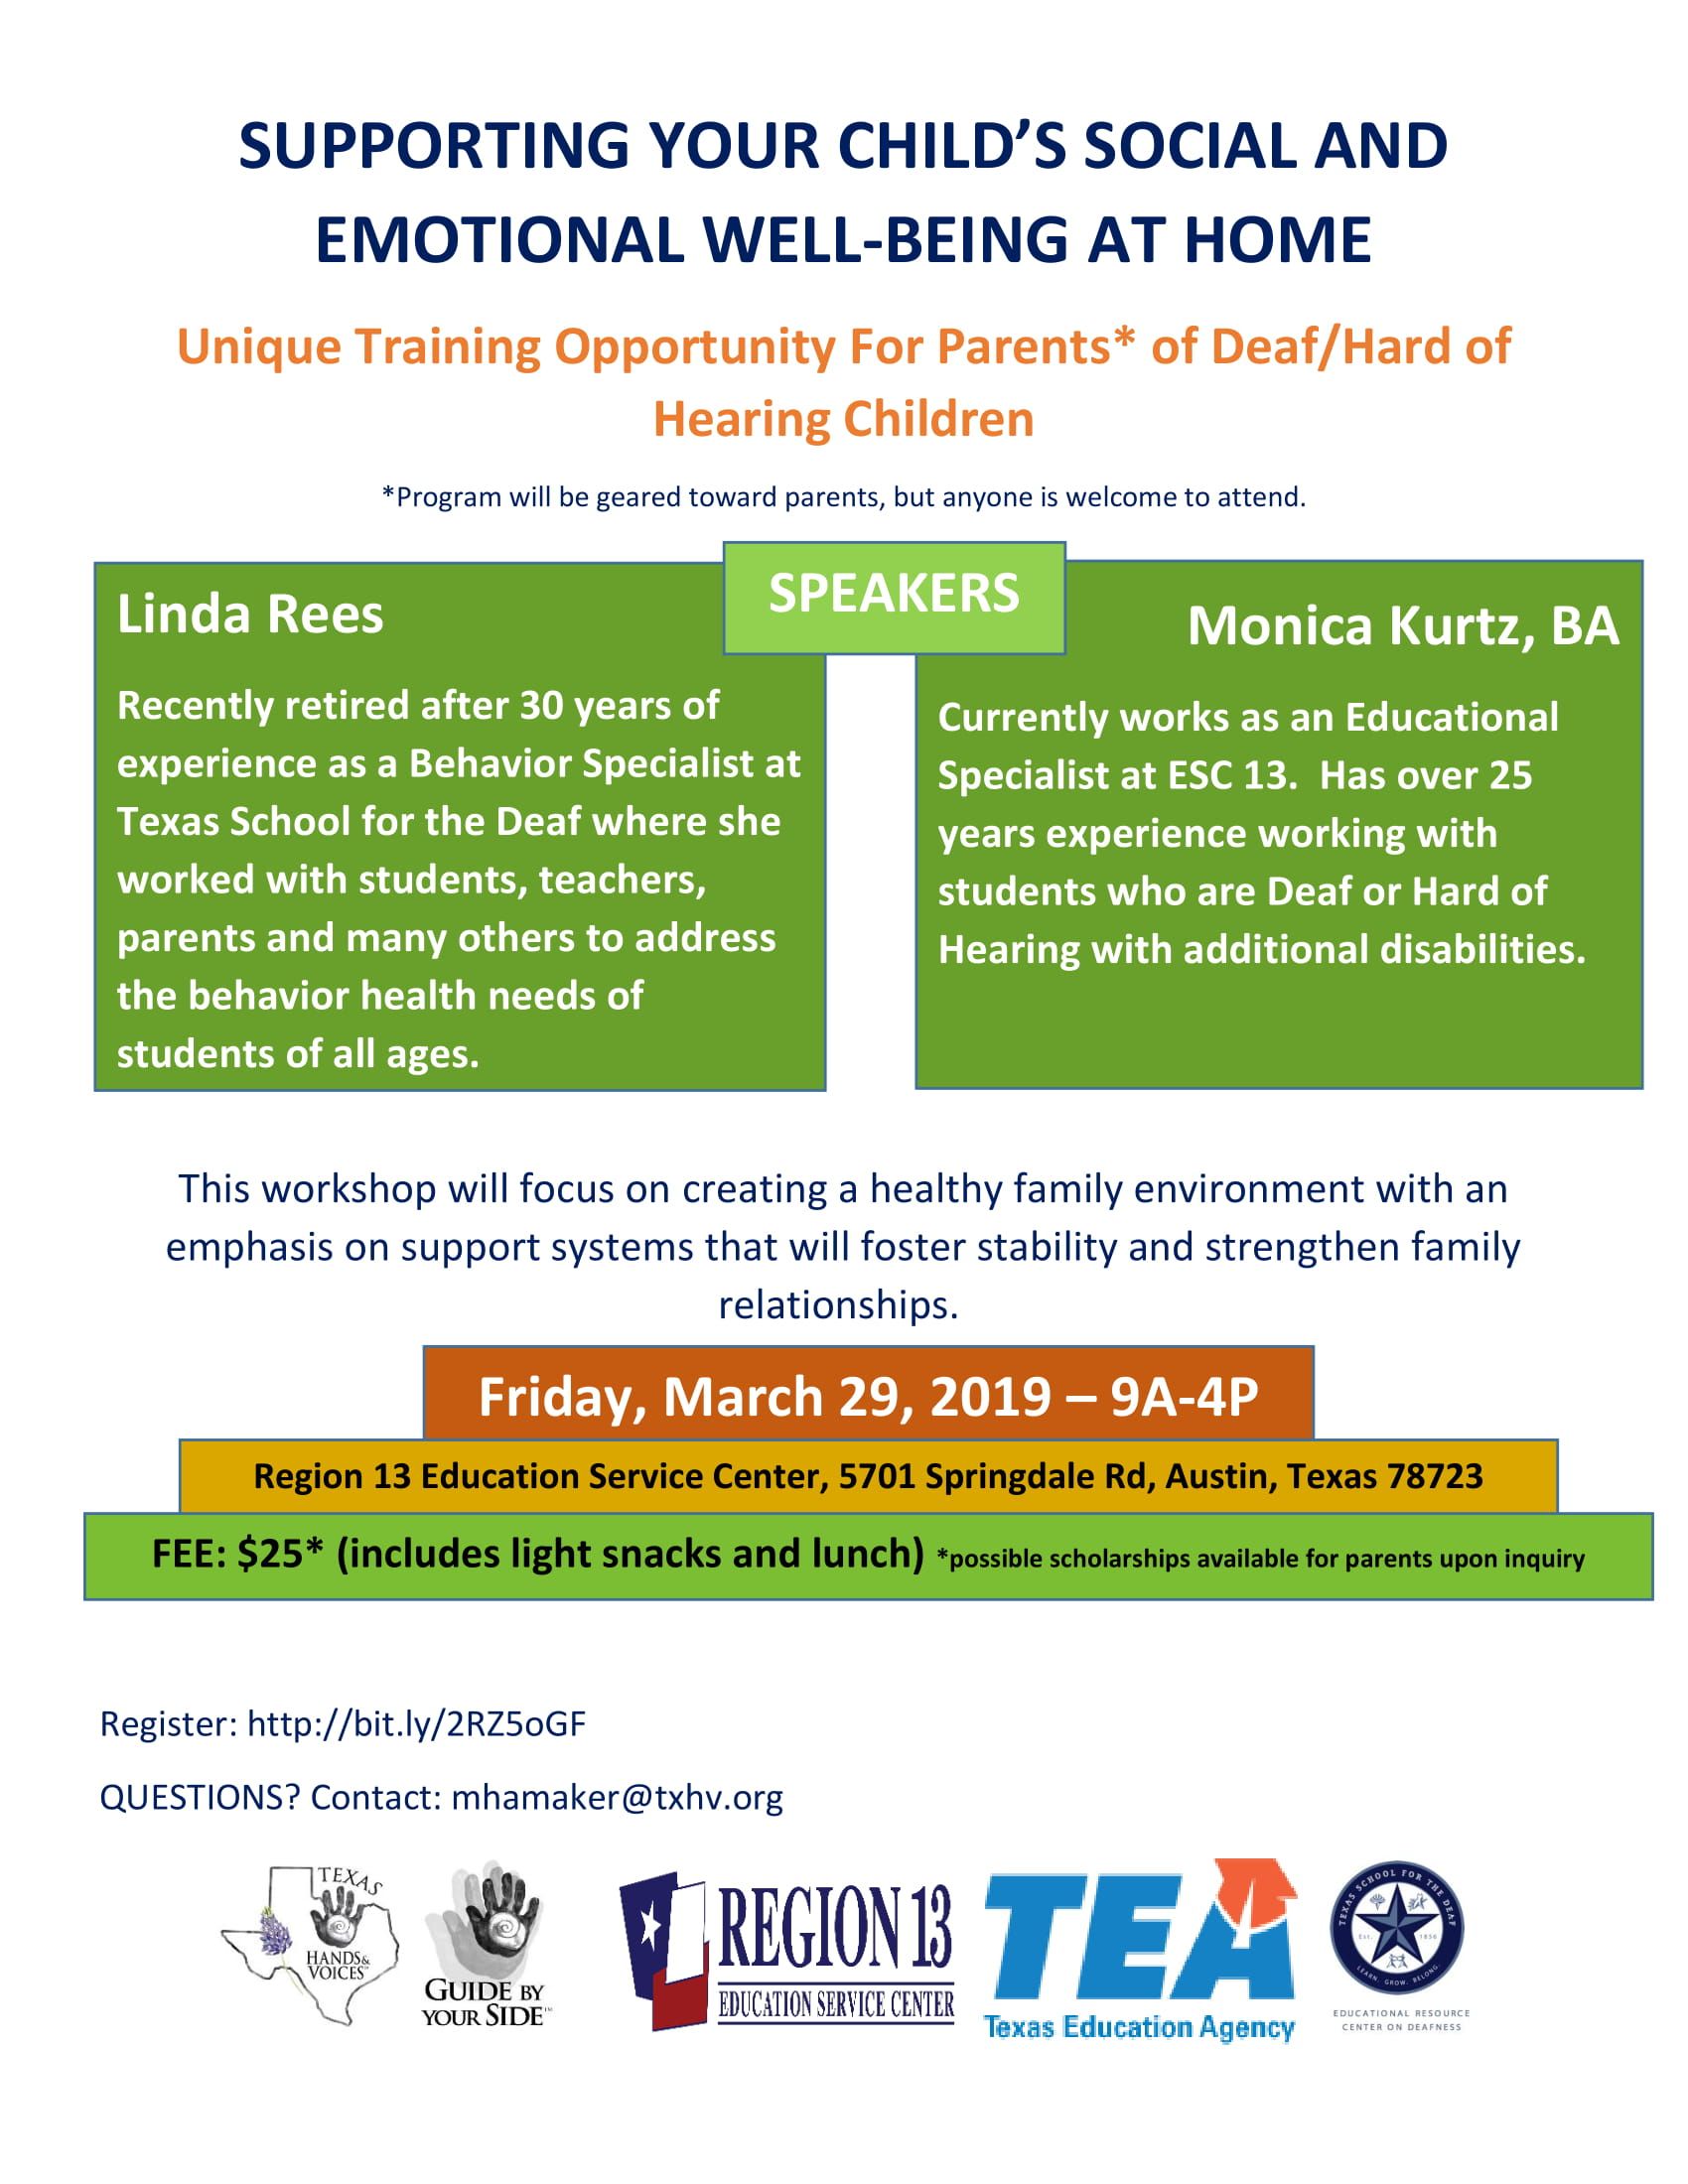 3.29.19 Parent Social and Emotional Well Being Training Flyer-ESC 13-1.jpg